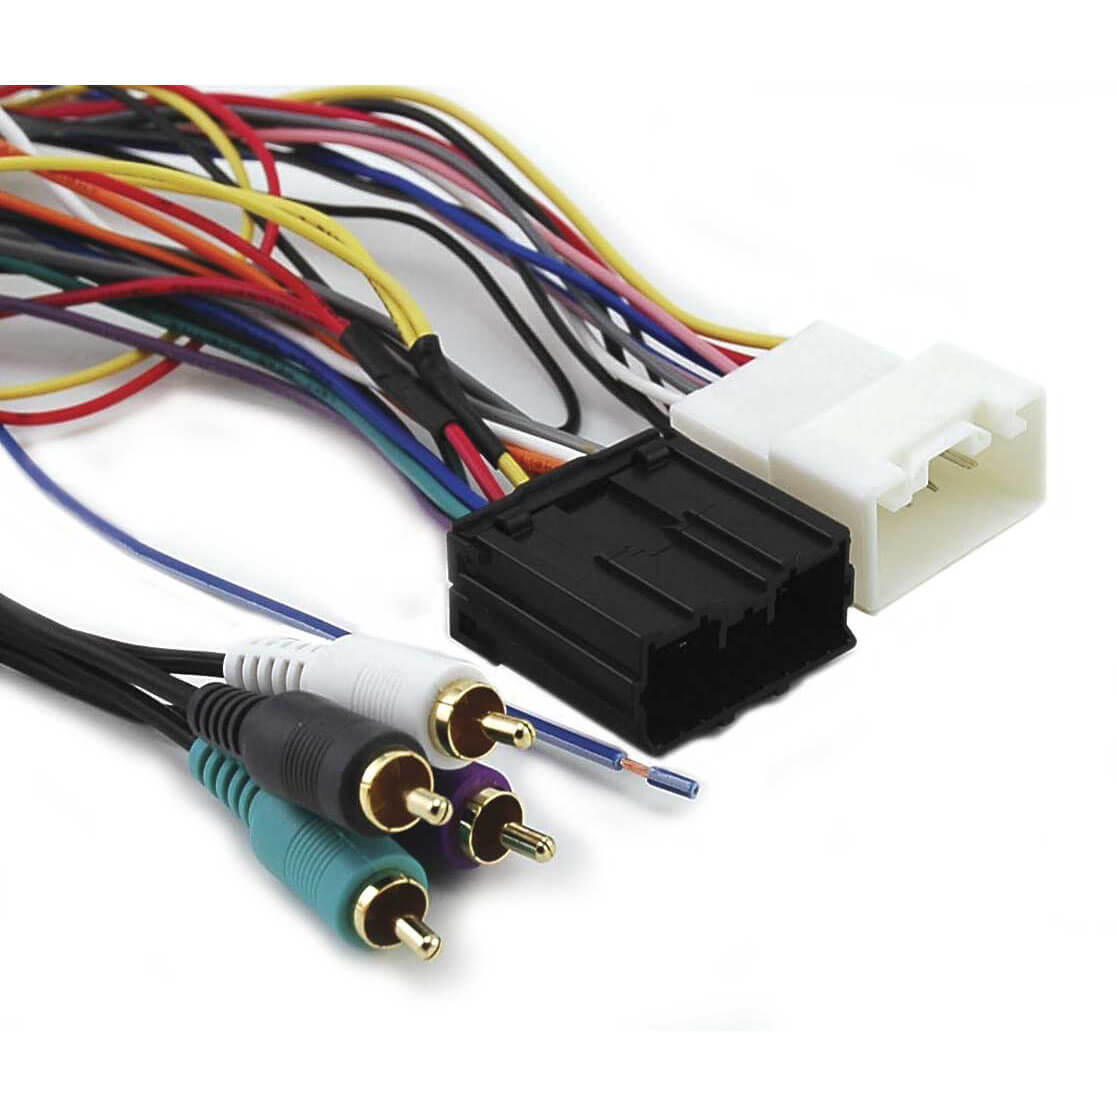 Mitsubishi Amplifier Interface Harness